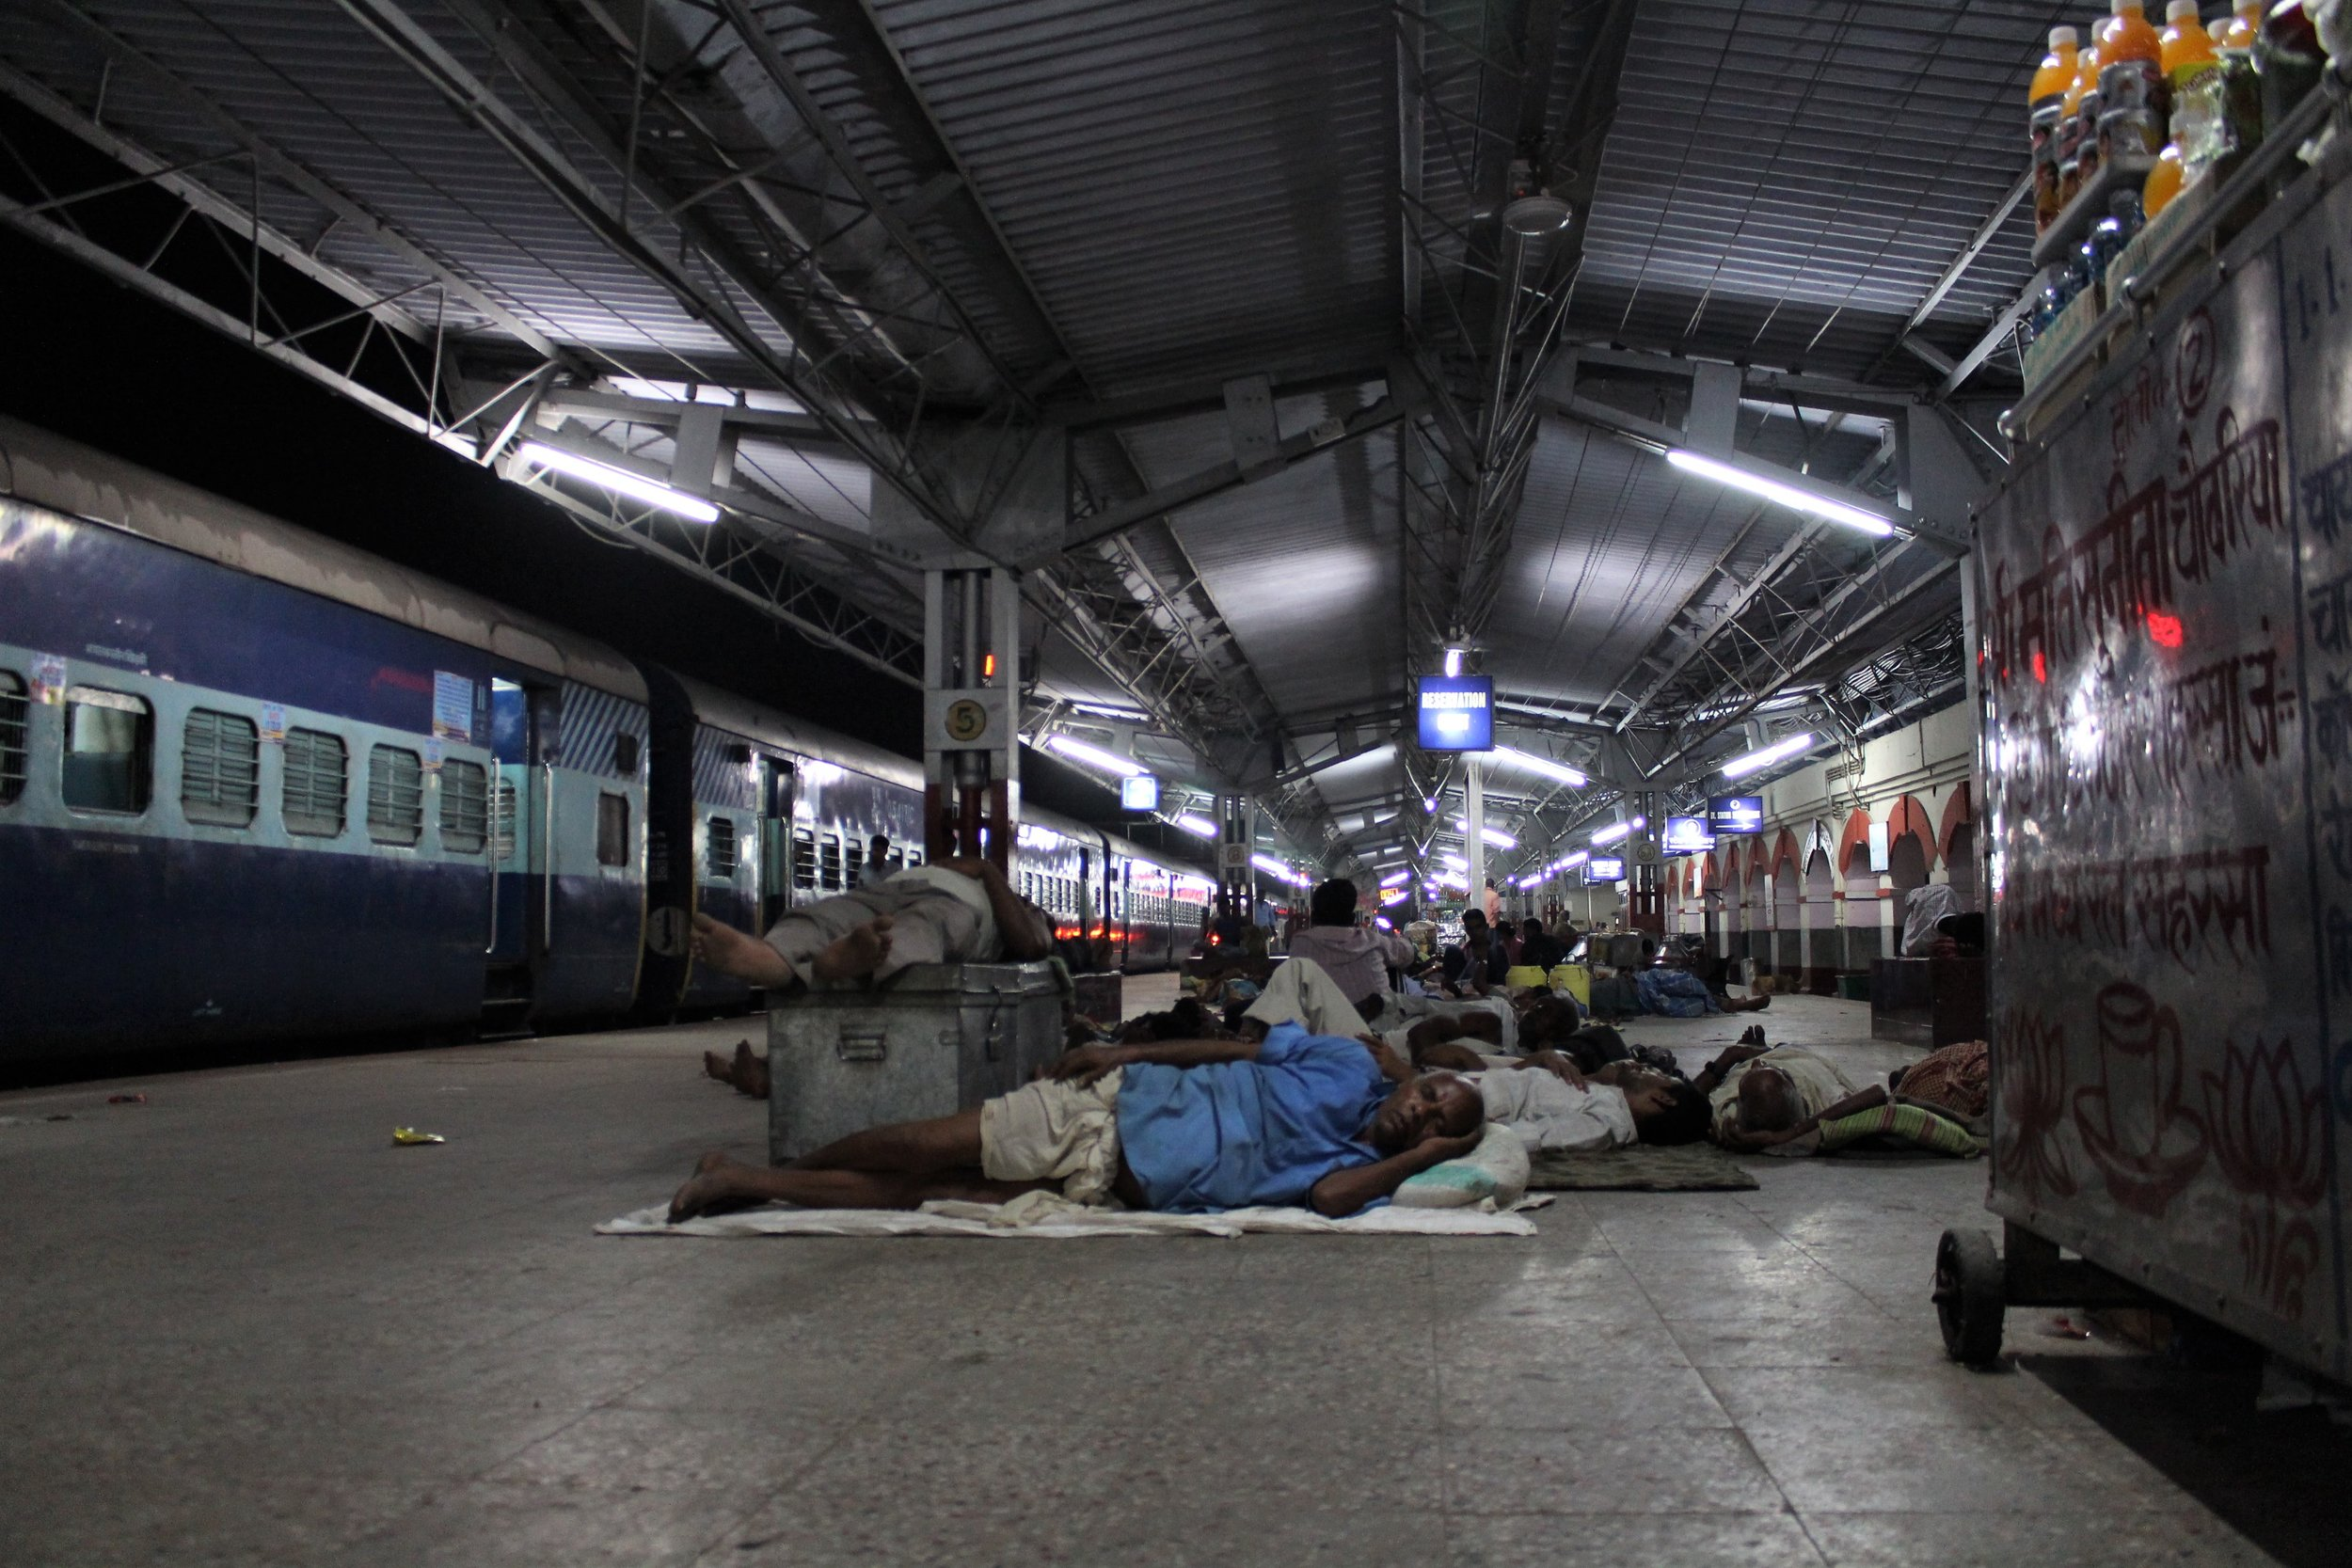 Passengers take nap at Saharsa Railway Station. Credit: Atul Anand